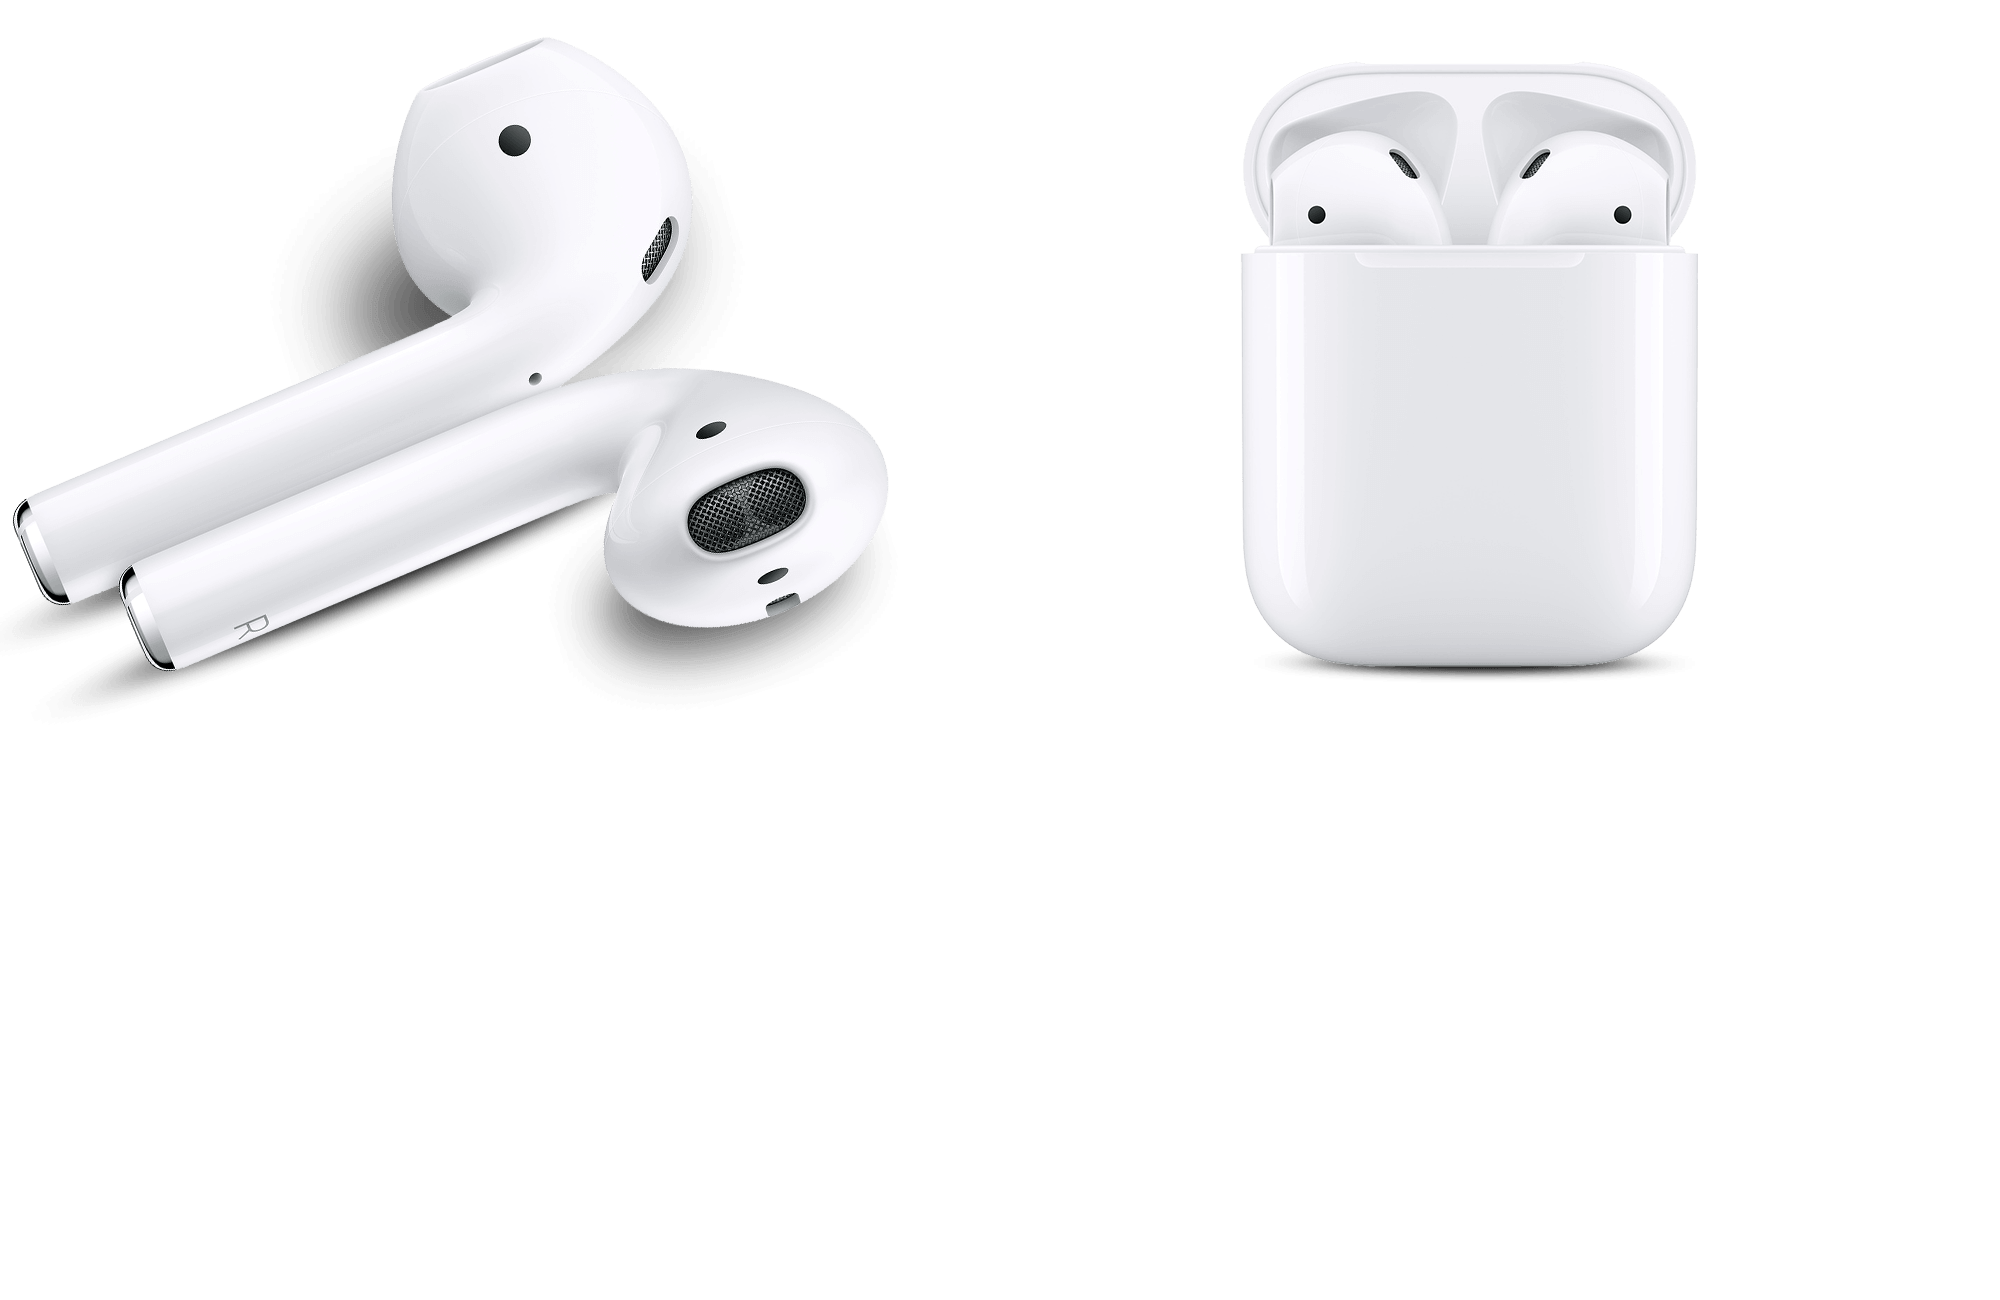 APPLE AirPods (2019) 2nd Gen. - Cuffie Bluetooth con custodia di ricarica wireless (In-ear, Bianco)